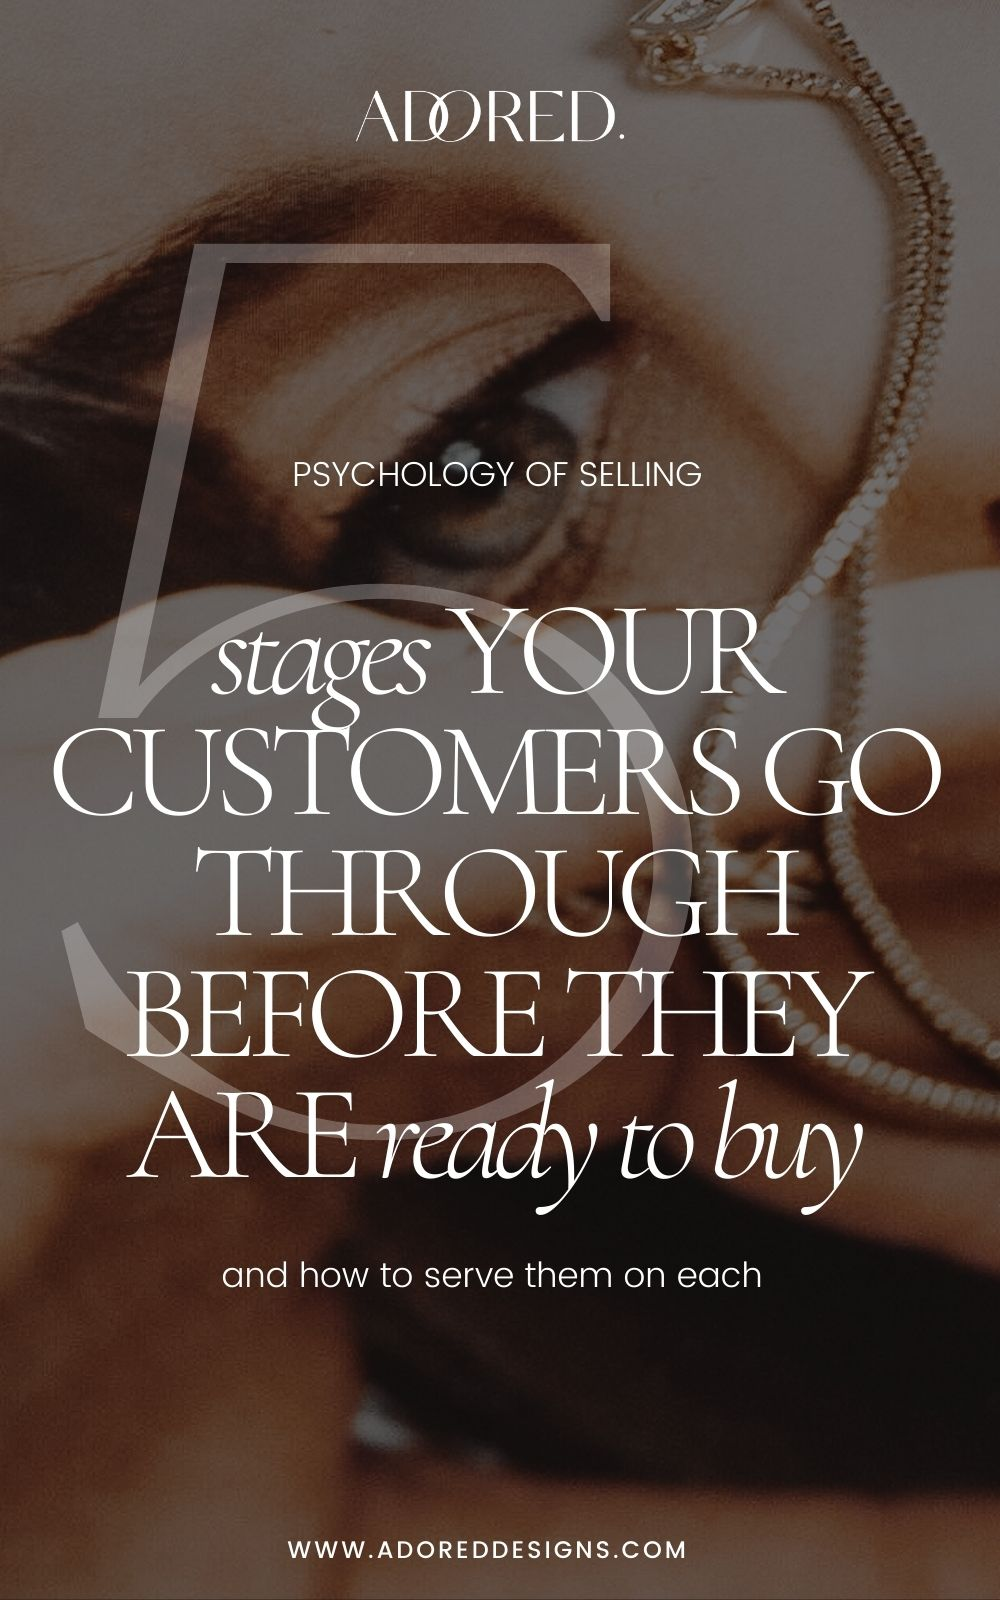 Selling psychology: 5 stages people go through before they are ready to buy